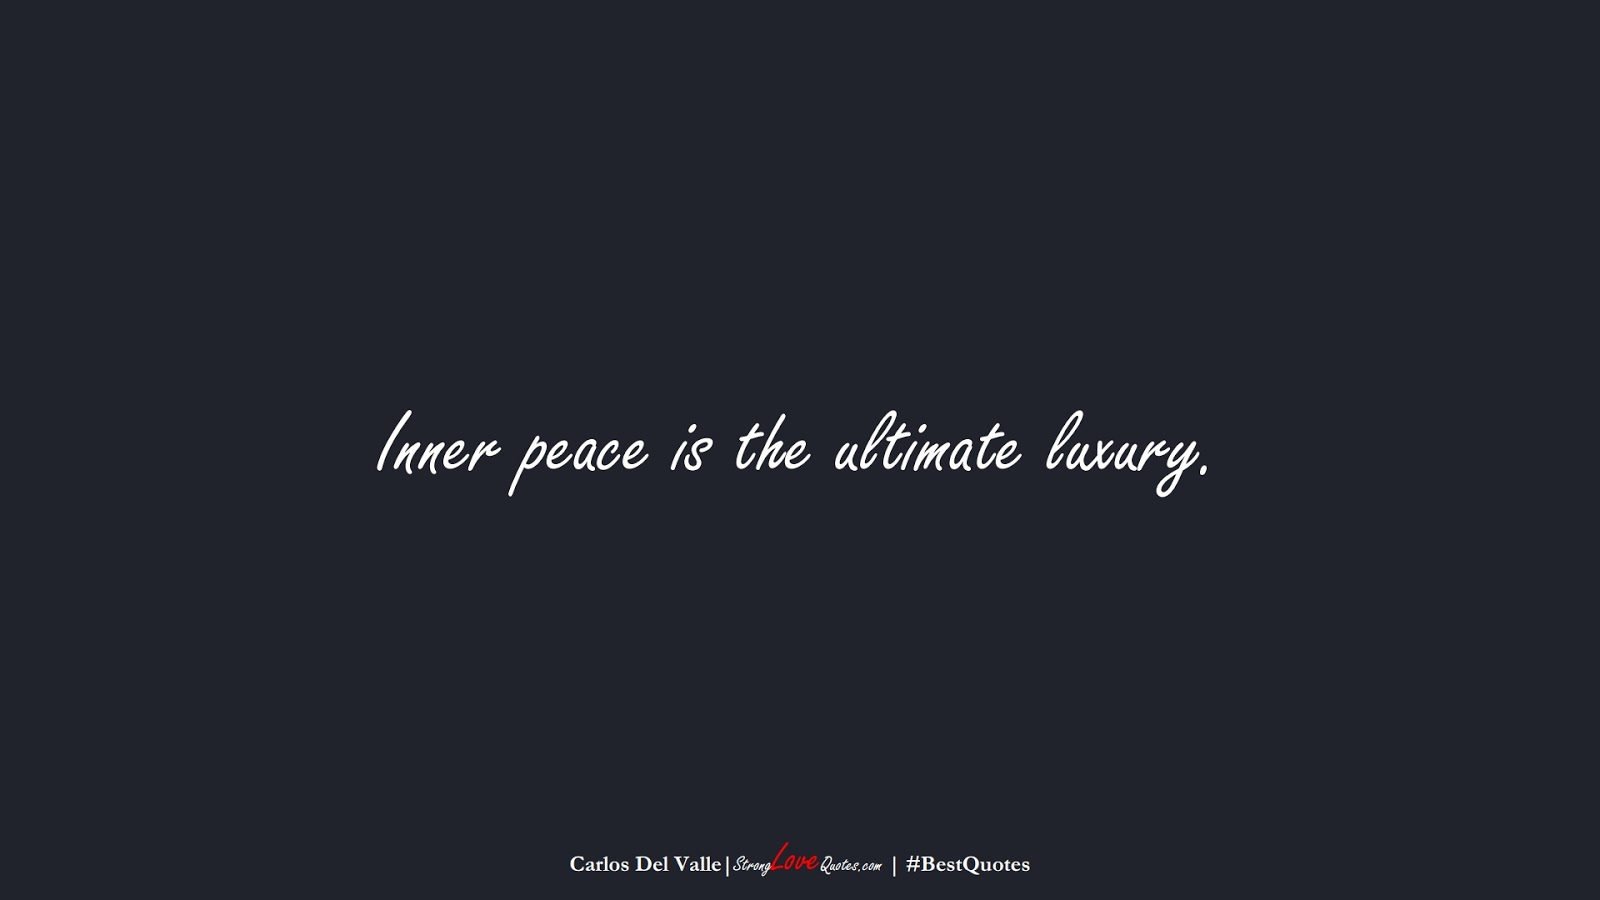 Inner peace is the ultimate luxury. (Carlos Del Valle);  #BestQuotes